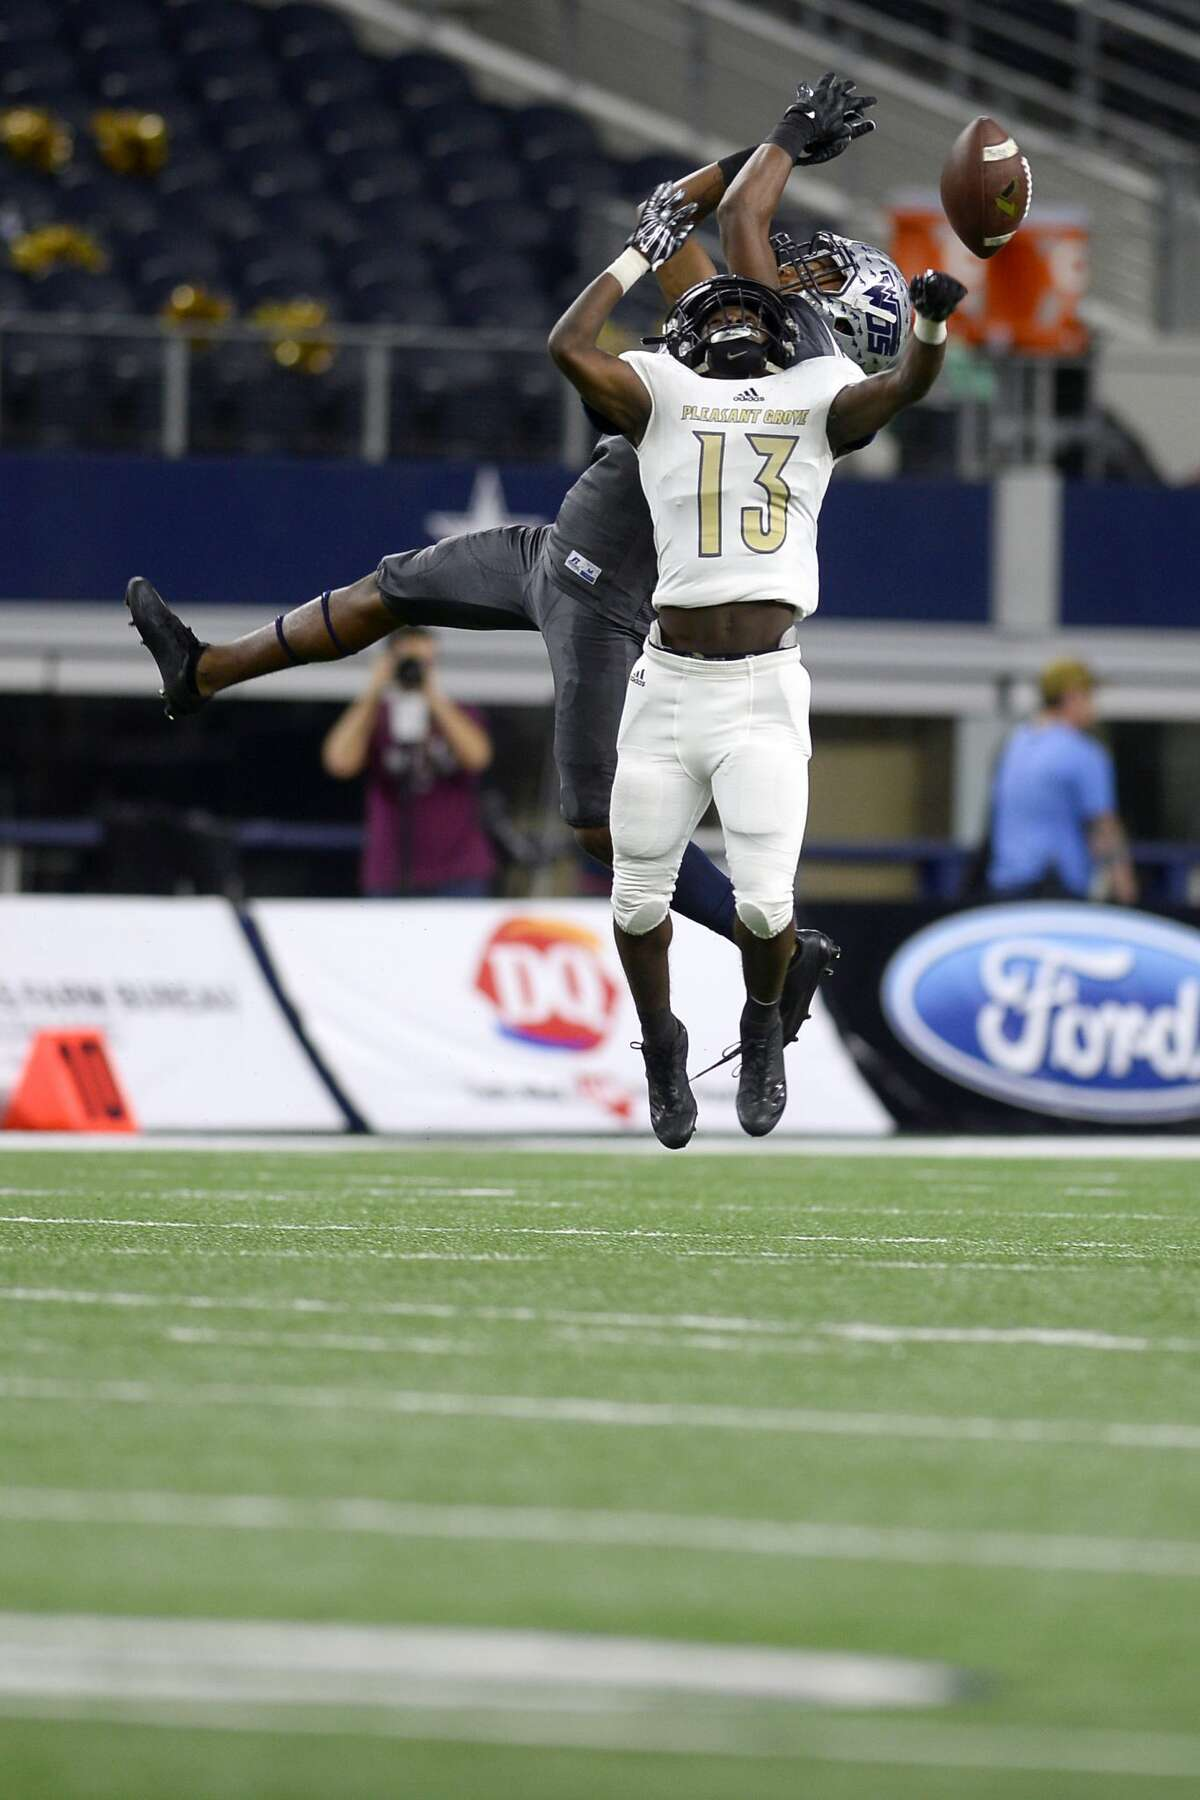 West Orange-Stark?•s Deiondr?•e Hawthorne and Pleasant Grove's Tyler Kelley leap for a pass during the second quarter against in the Class 4A Division II state final at AT&T Stadium in Arlington on Friday. Photo taken Friday 12/22/17 Ryan Pelham/The Enterprise